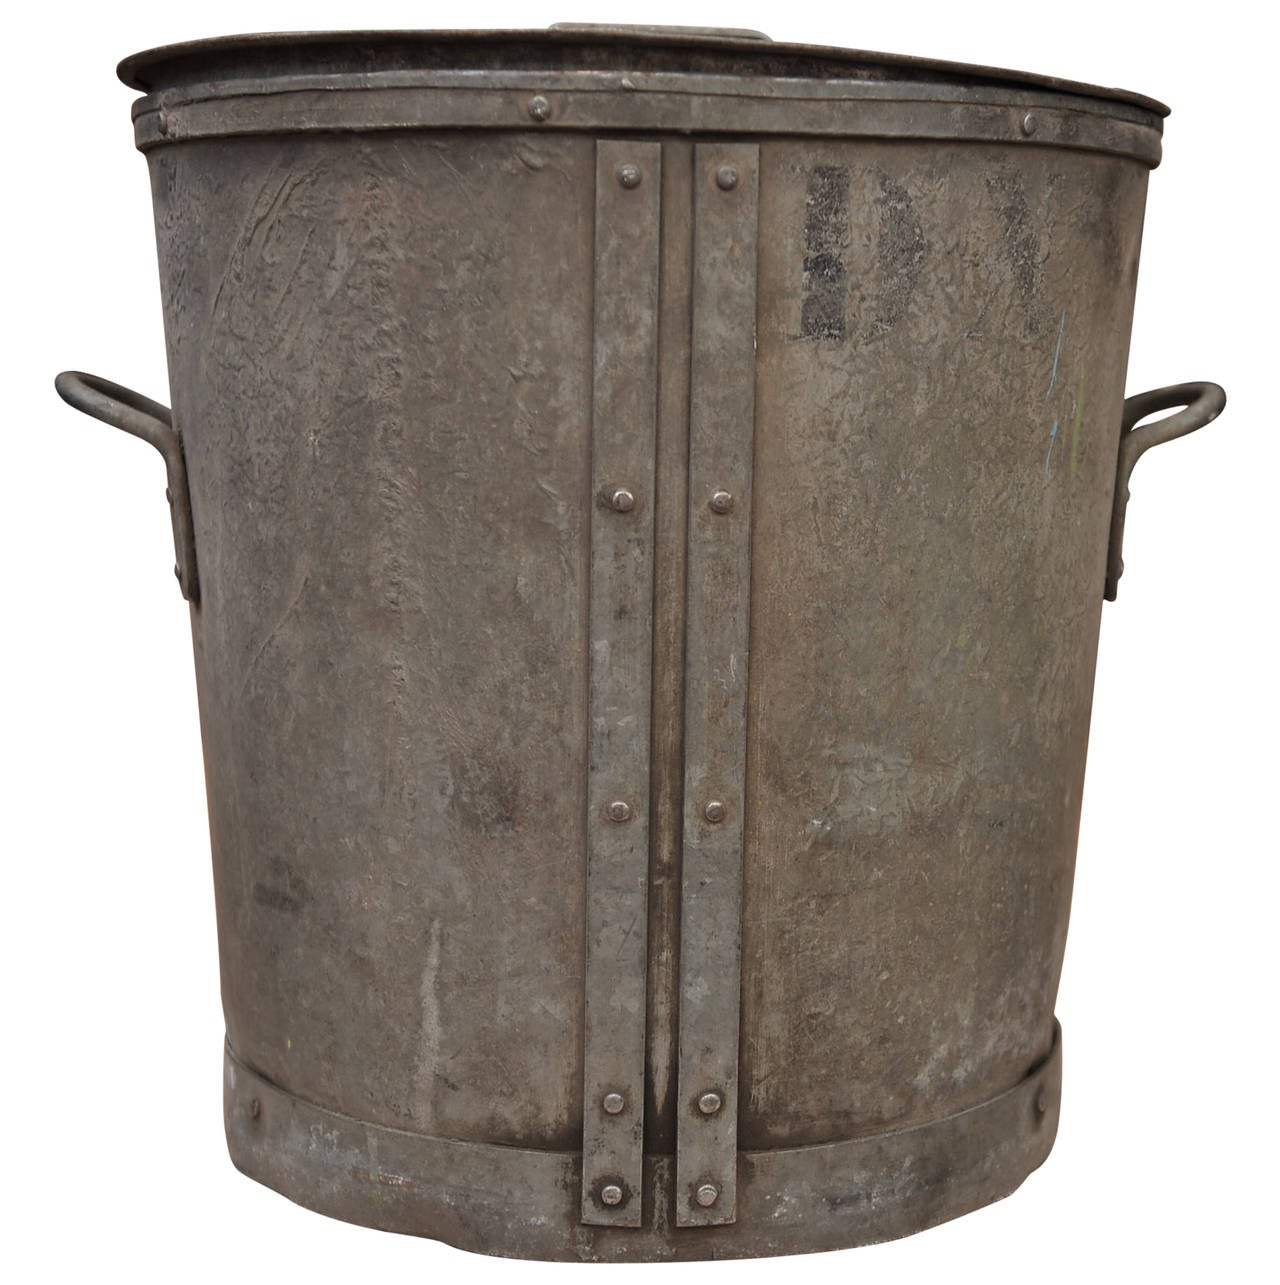 vintage parisian galvanized riveted metal buckets circa